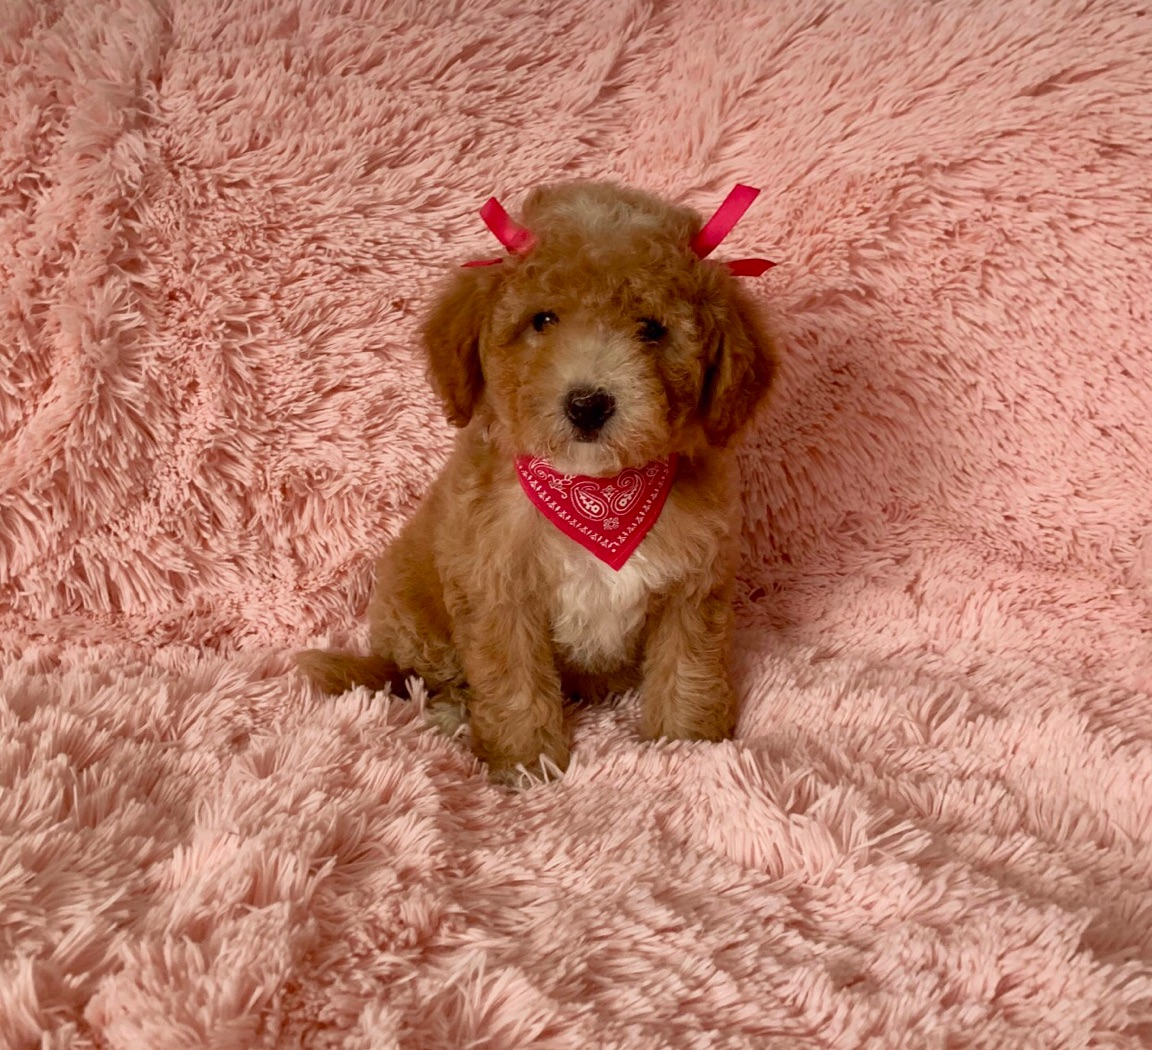 RARE MALTIPOO TEDDYBEAR FACE FULL GROWN 10LBSUP TO DATE ON SHOTSHOME RAISED PUPPY WITH 20 YE